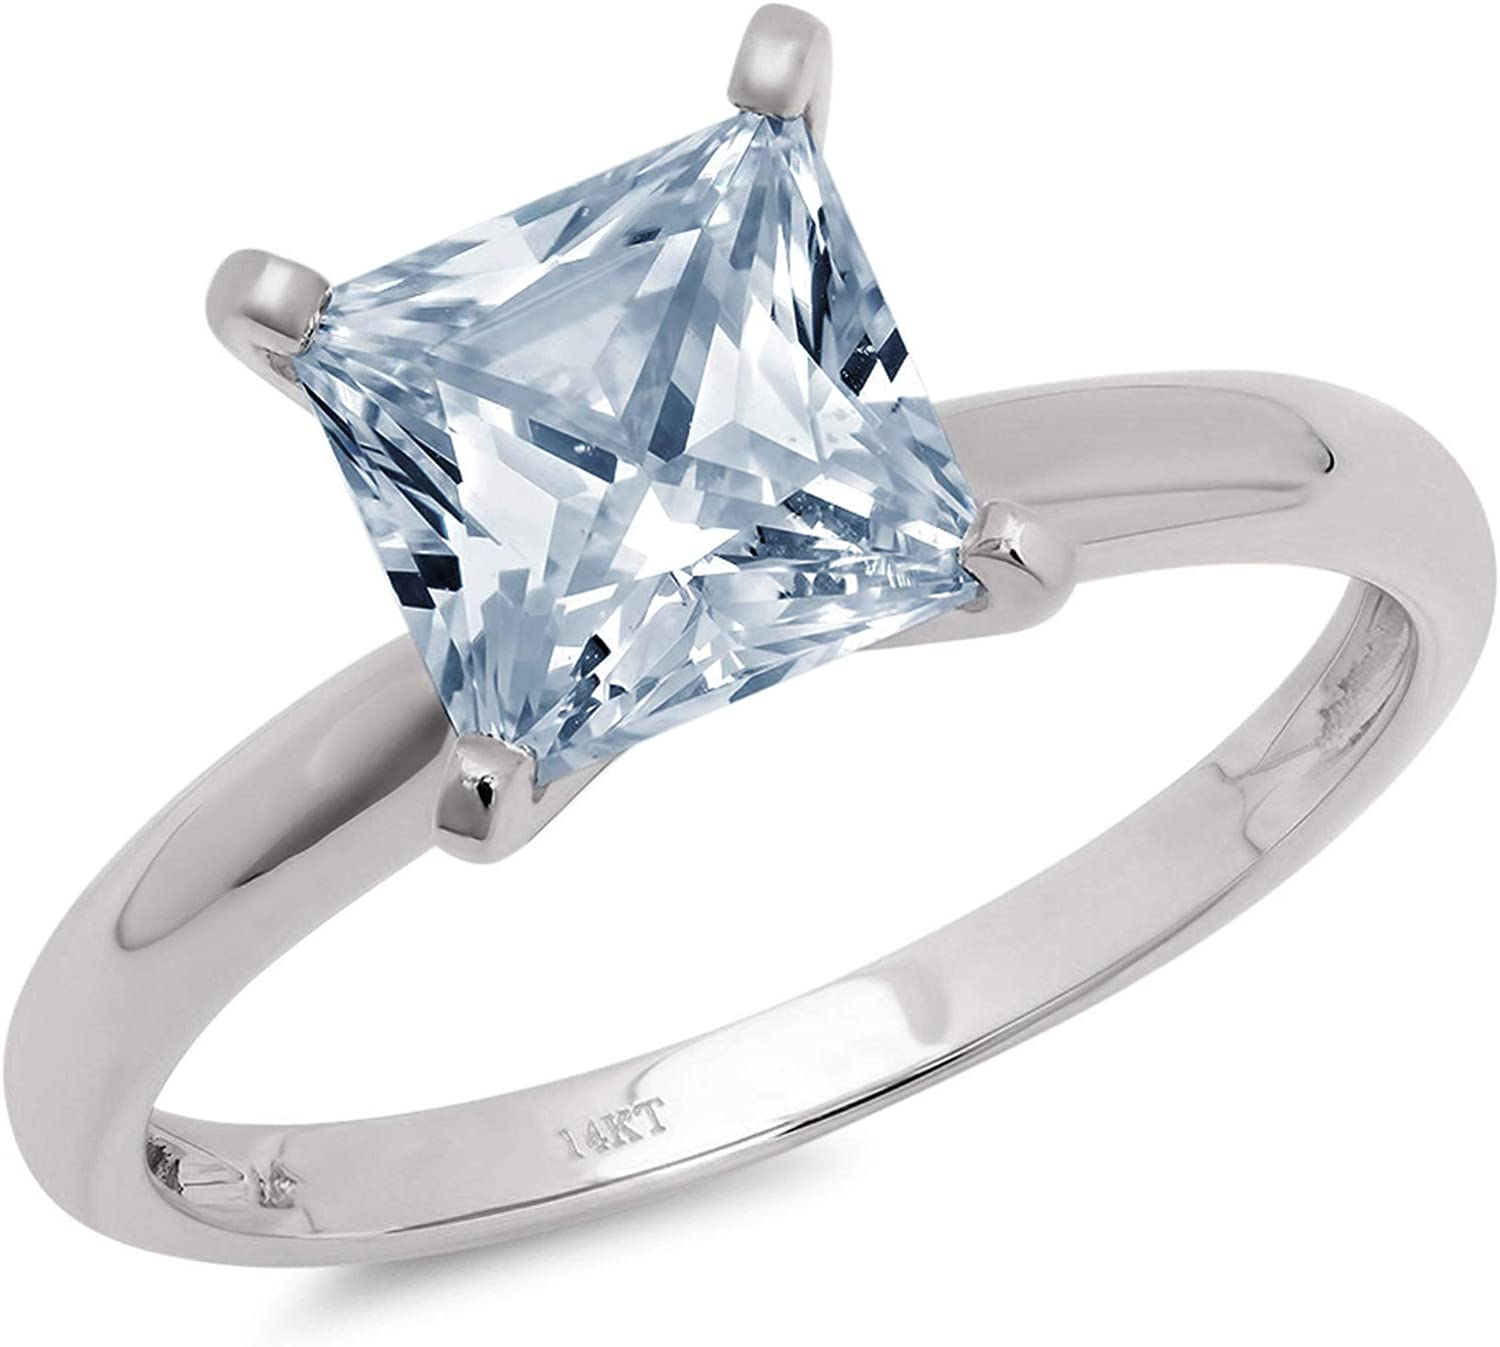 Clara Pucci 0.50 ct Brilliant Princess Cut Solitaire Natural Aquamarine Gem 4-Prong Engagement Wedding Bridal Promise Anniversary Ring Solid 18K White Gold for Women